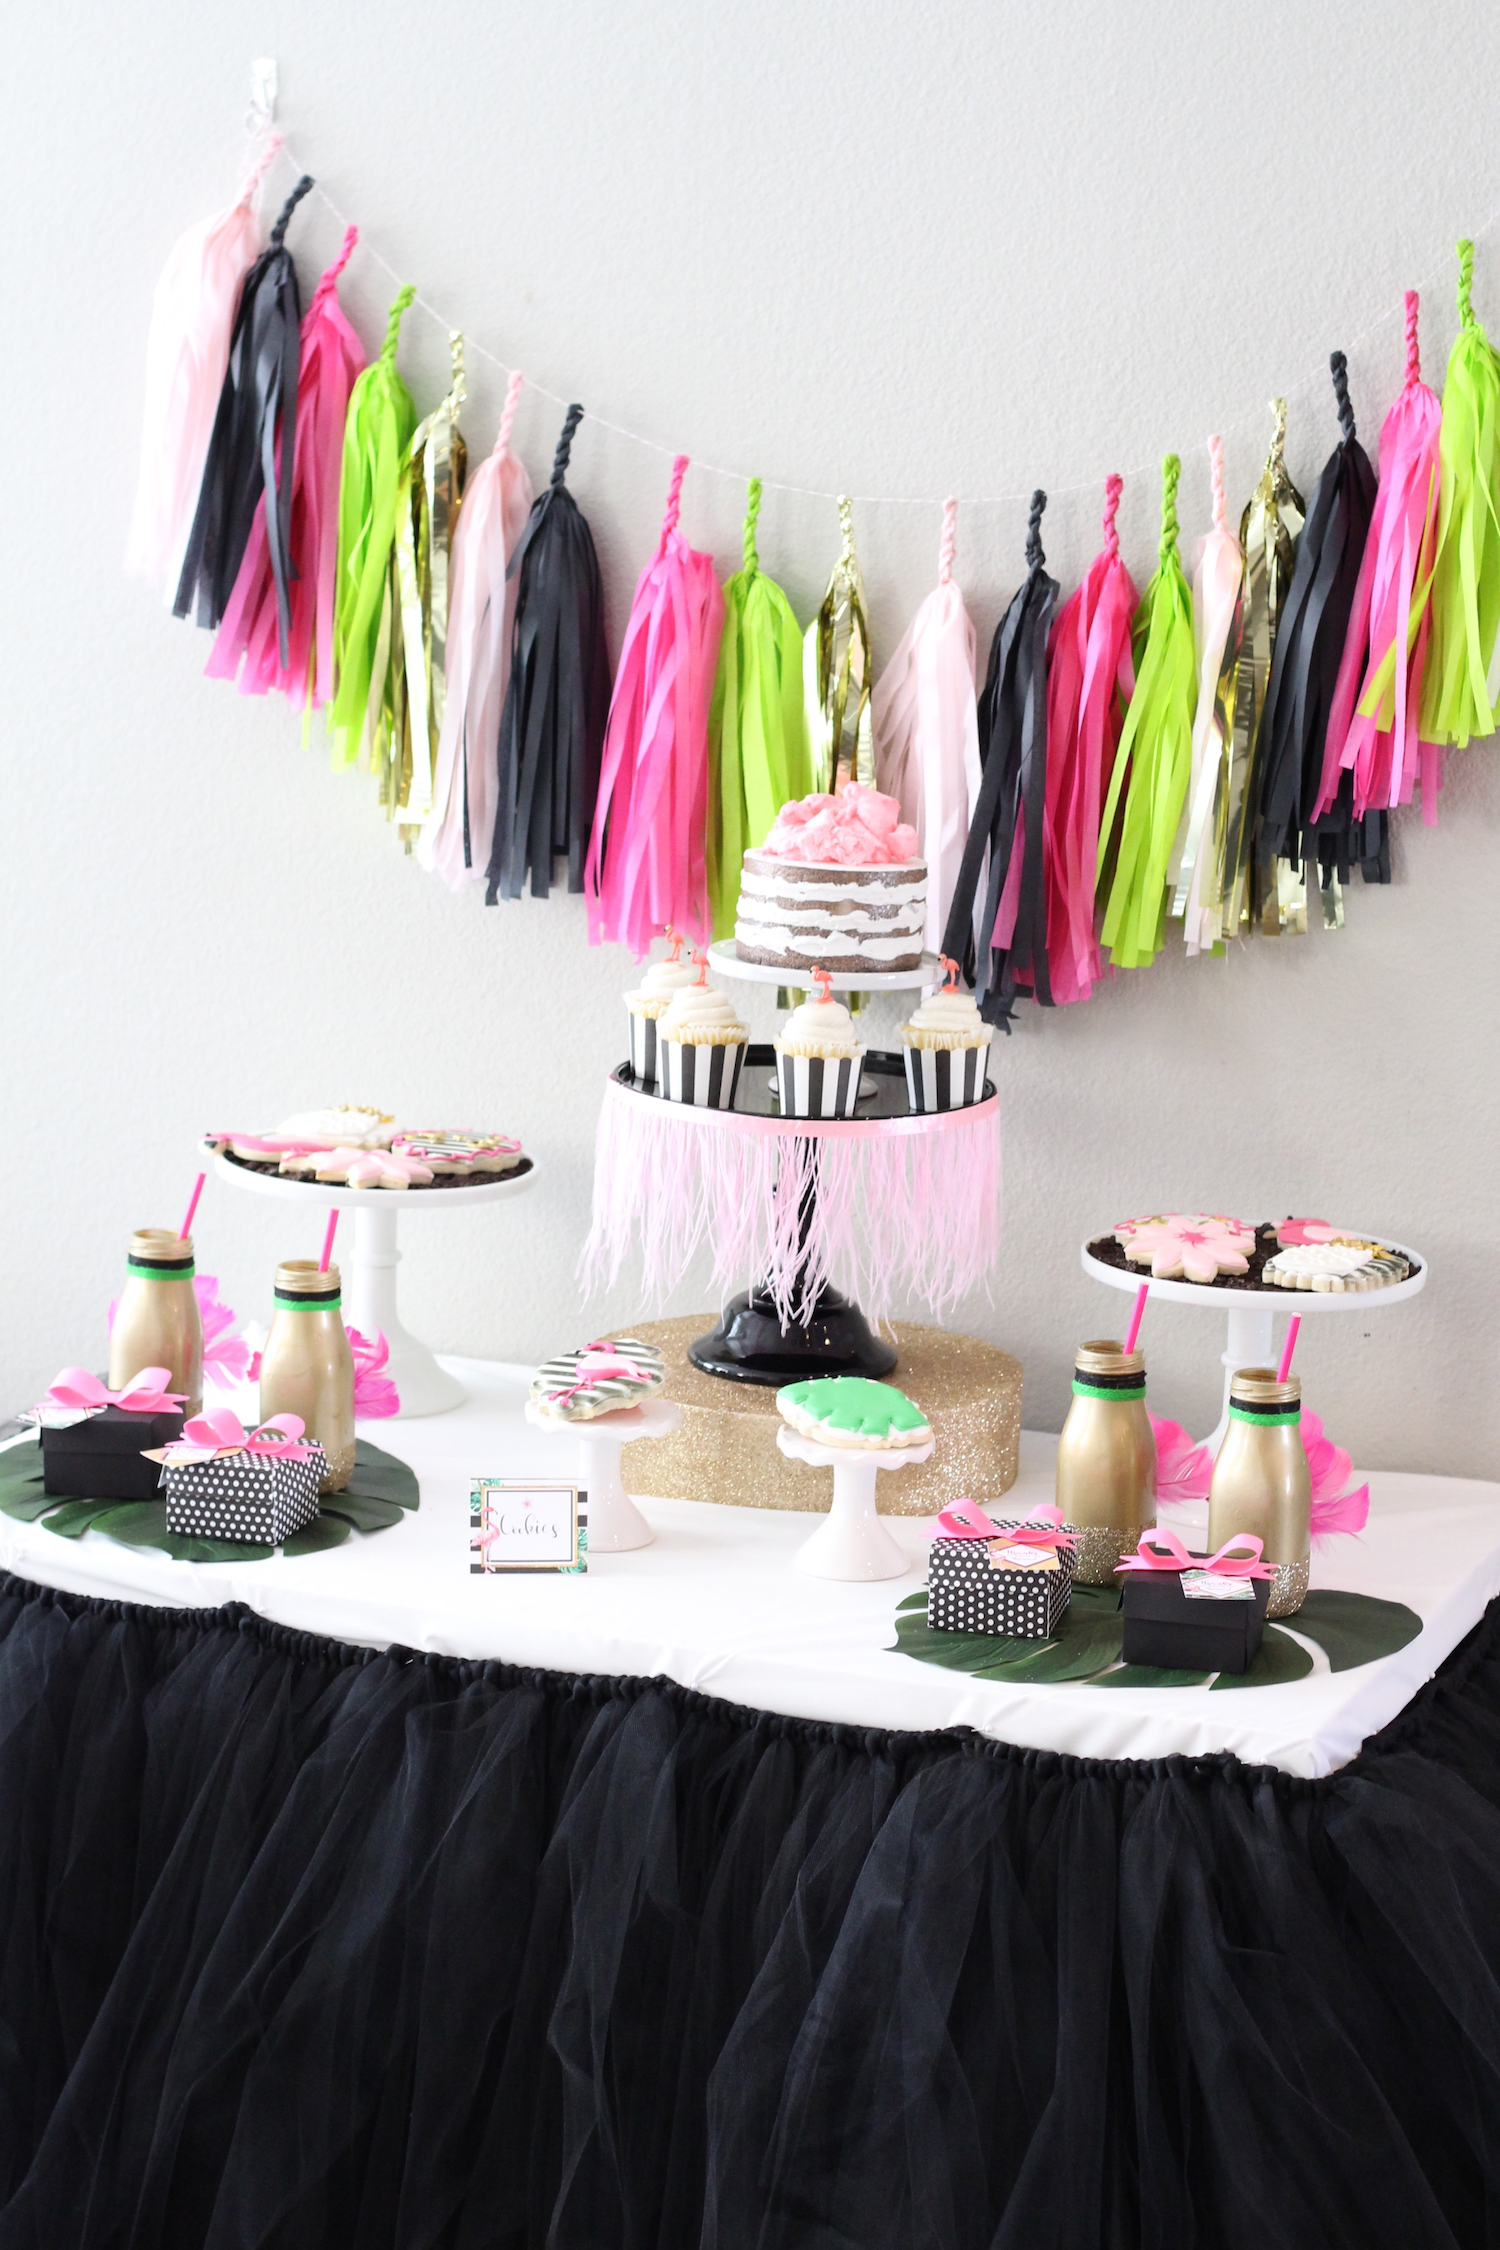 Party Inspiration for a Let's Flamingo Bachelorette Party or Bridal Shower - a fun flamingo party theme in pink, white, black, green and gold. Flamingo Dessert Table. As seen on www.BrendasWeddingBlog.com